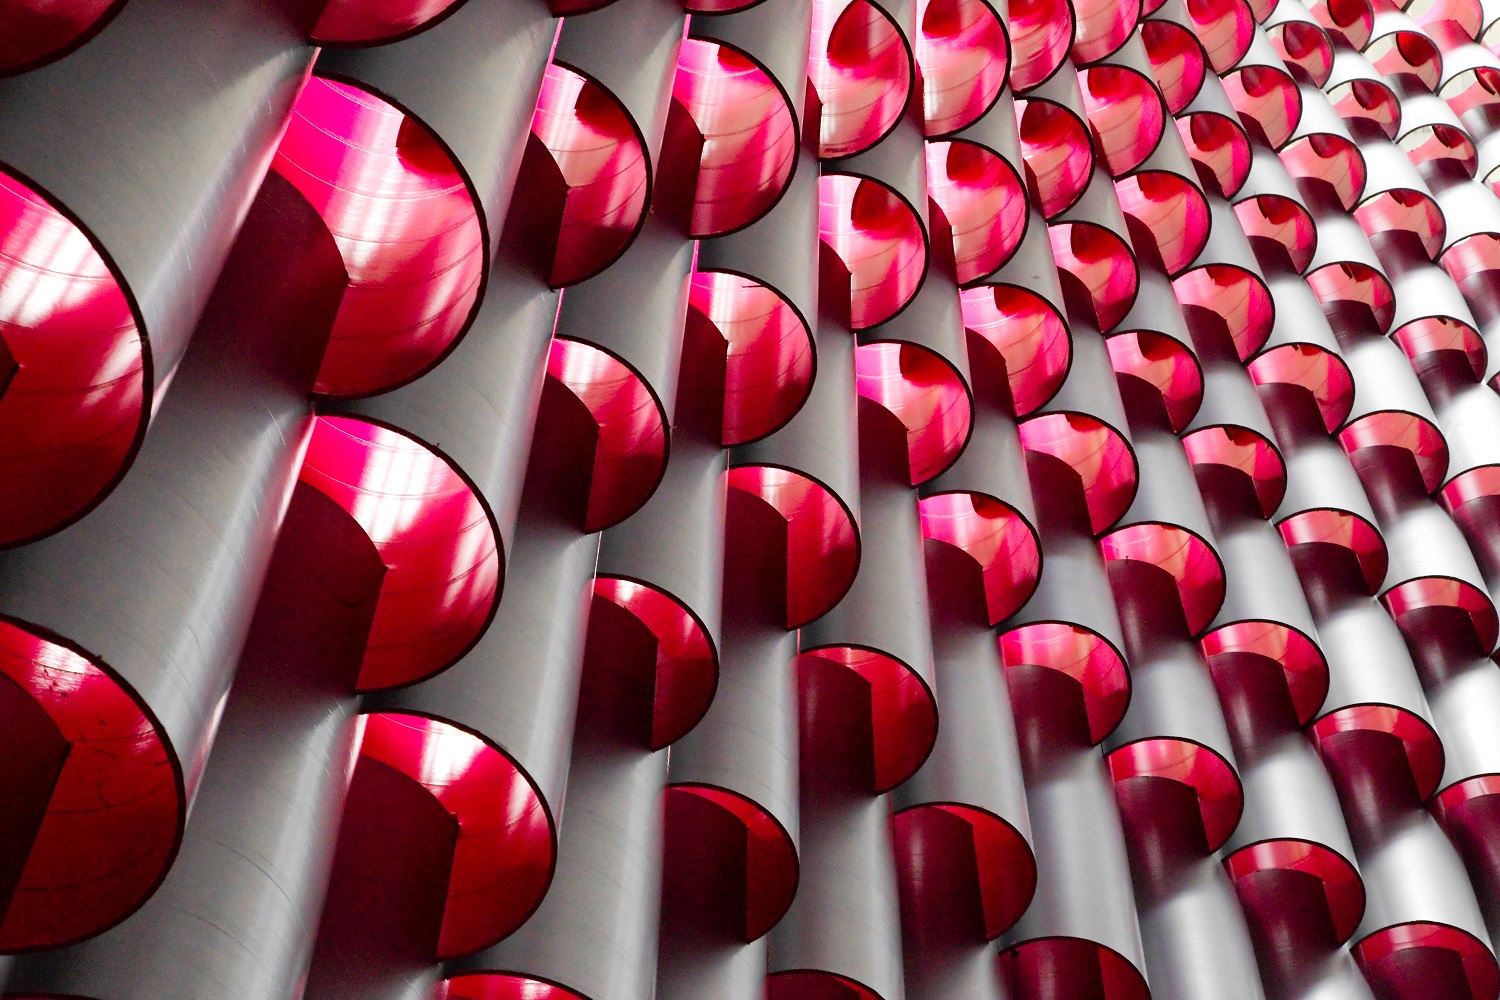 Round tubes stacked on top of each other with bright pink interiors creating a glowing tower.